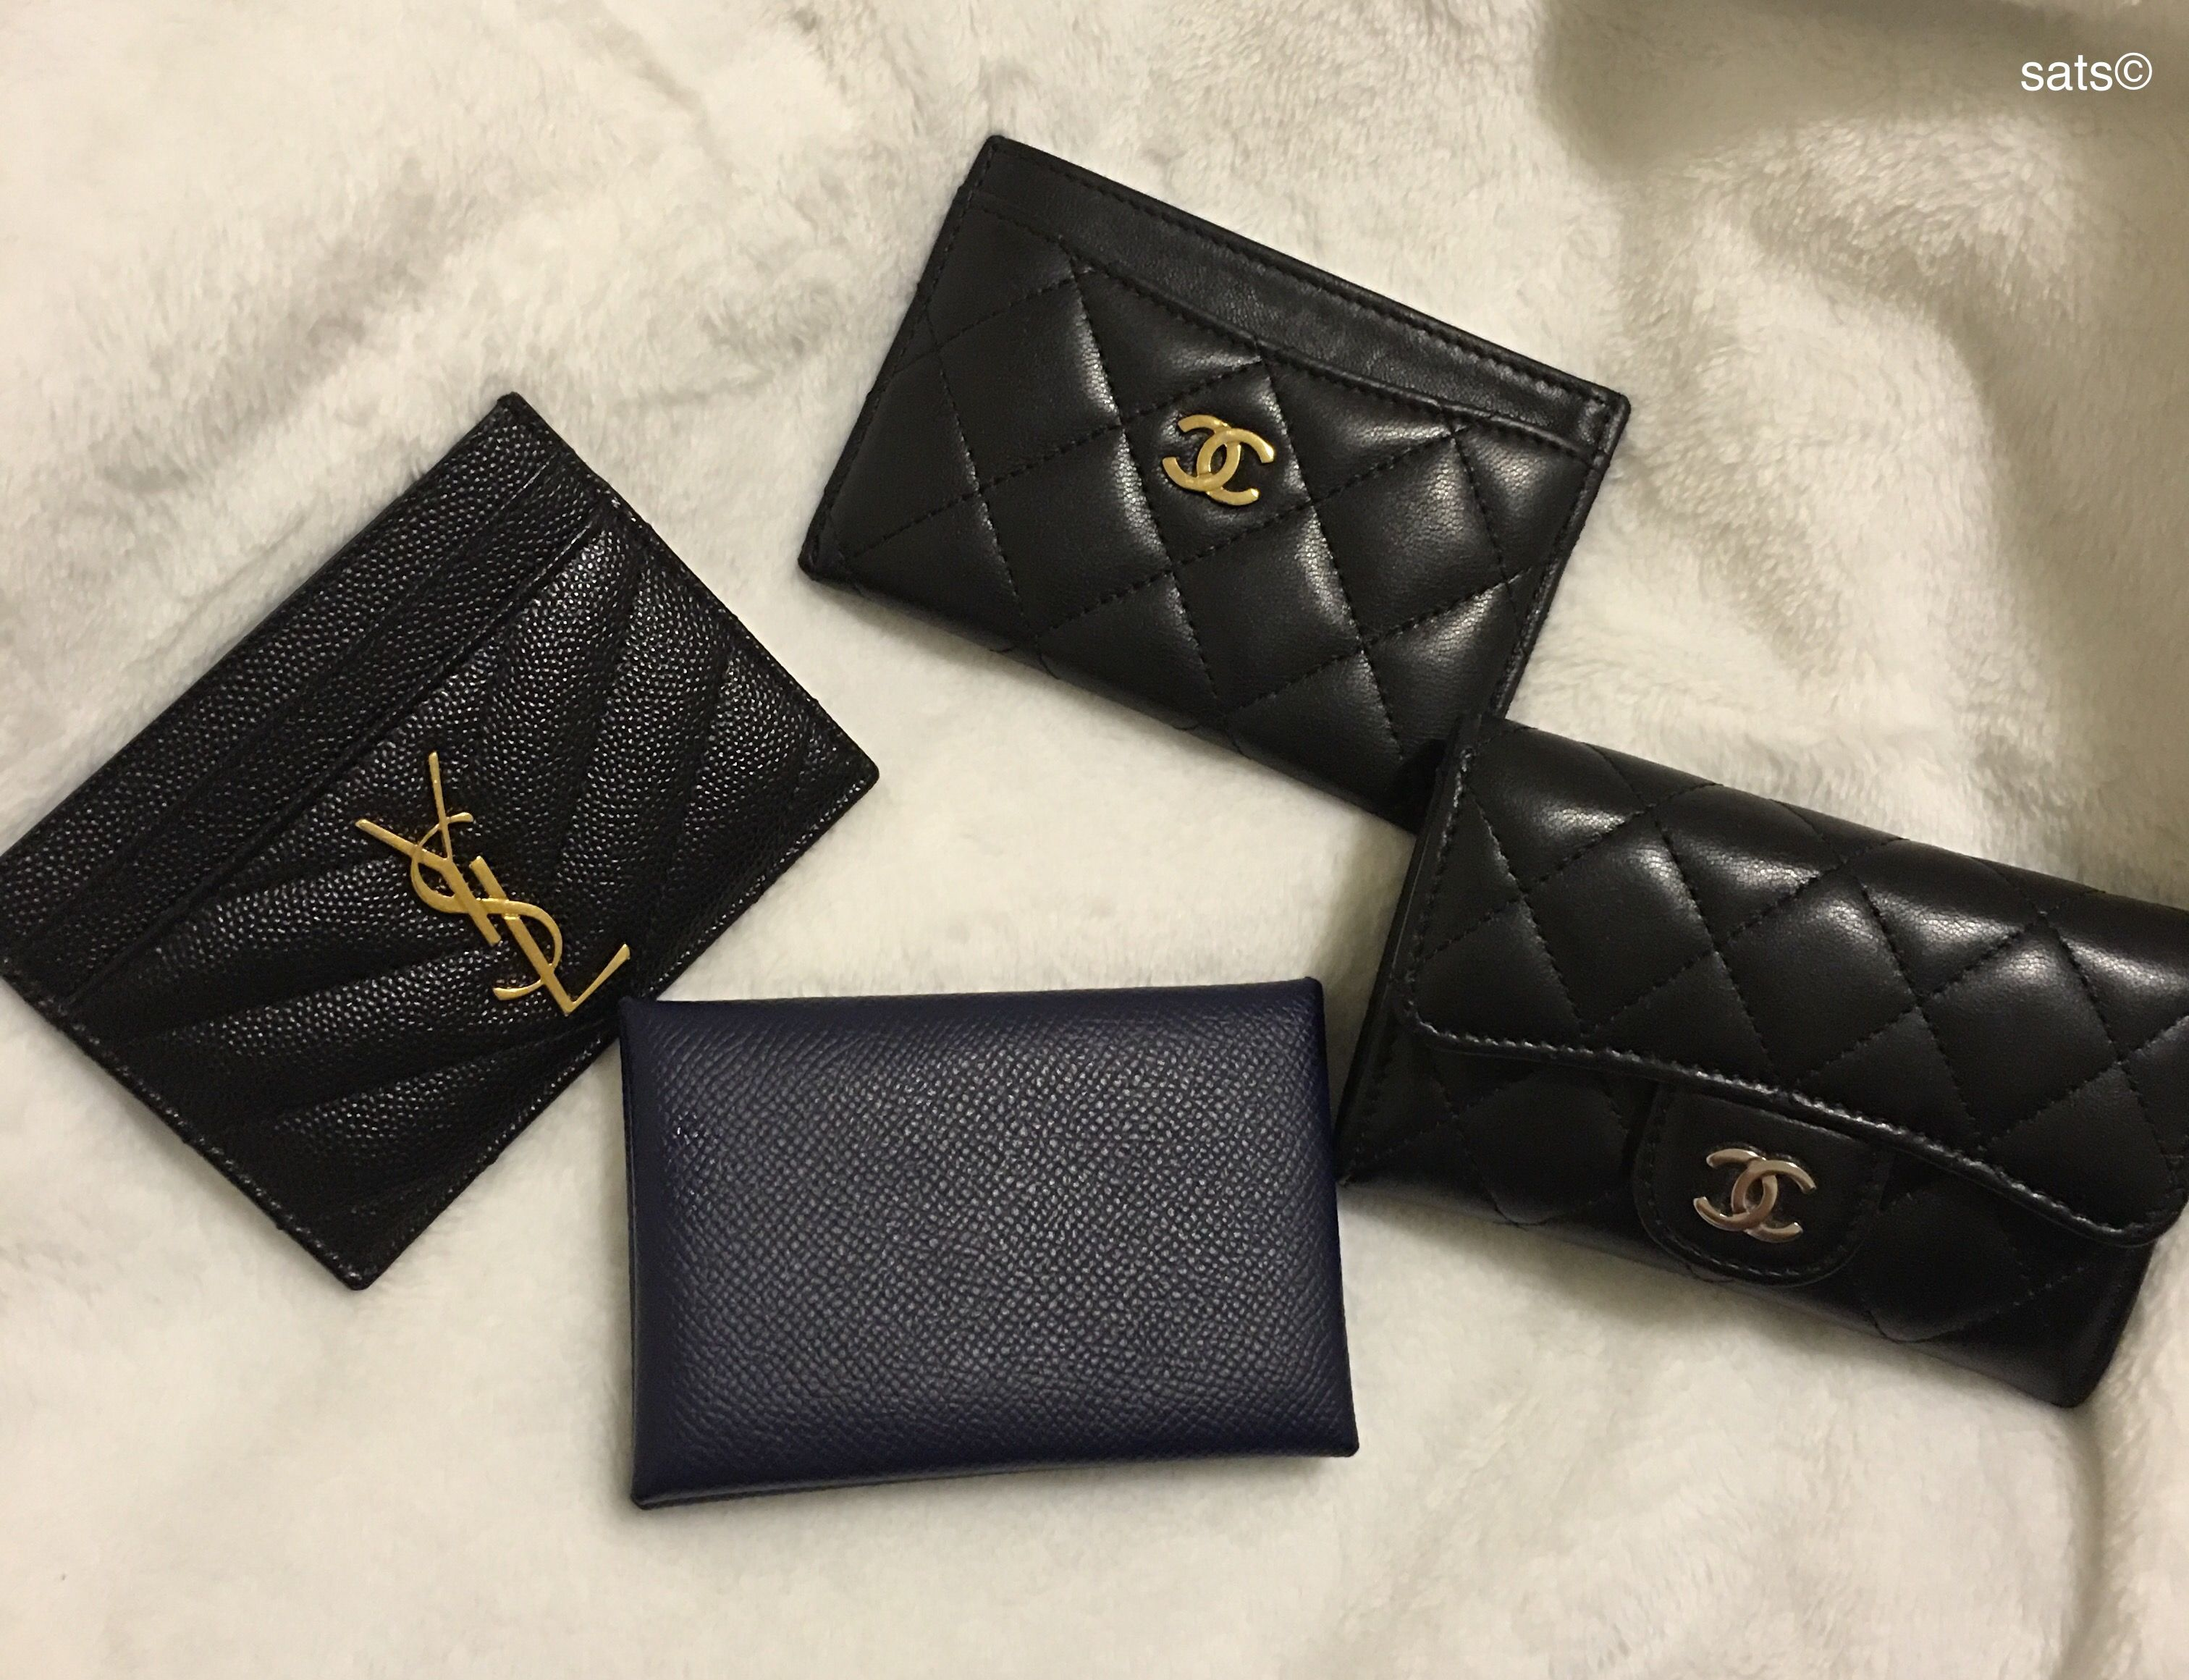 1526f90a2559 Some SLG's #ysl #chanel #hermes | ❤️Cute Bags❤ in 2019 | Bags ...